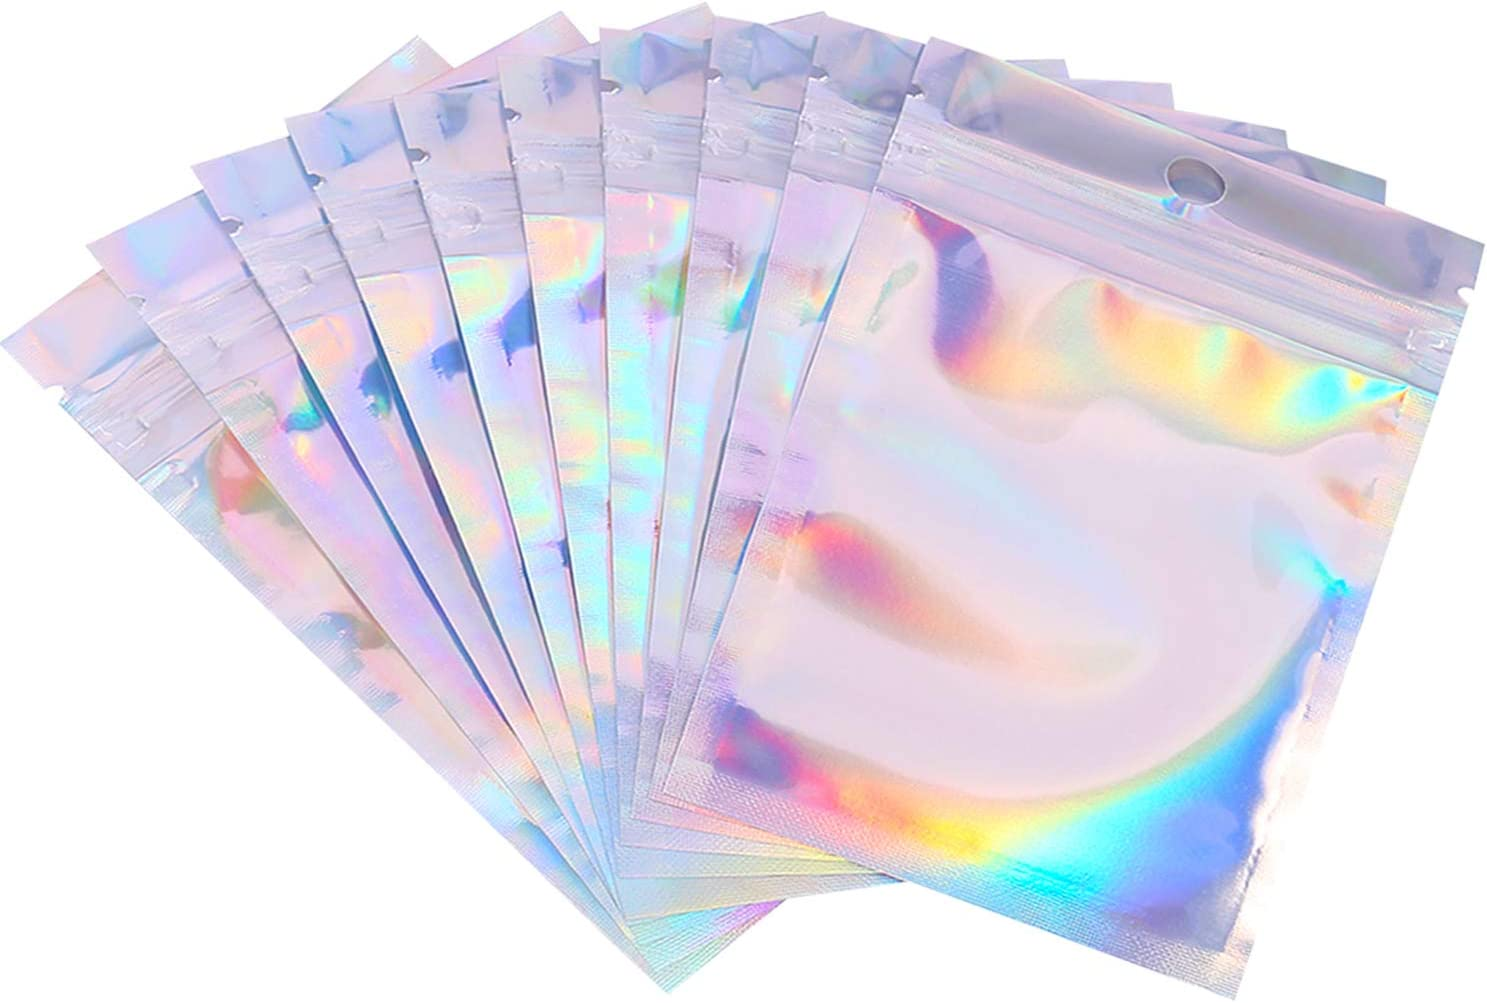 200 Pack Resealable Smell Proof Bags,Rocutus Foil Mylar Ziplick Bags,Flat Metallic Mylar Foil Bags for Party Favor Food Storage (14 x 20 cm/ 5.5 x 7.87 Inches)